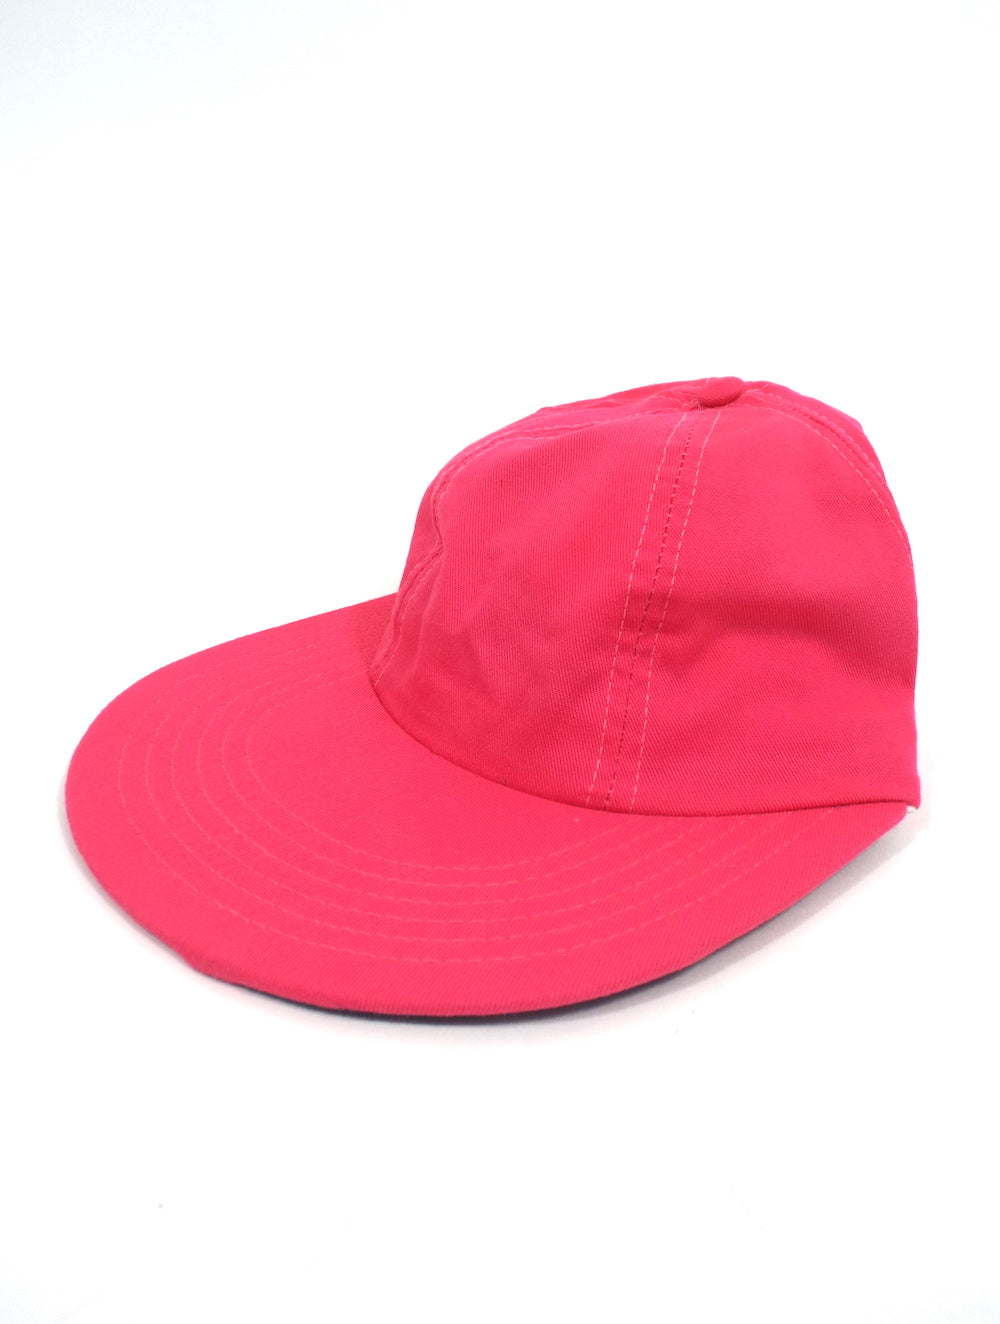 Vintage 90s Hot Pink Dad Hat